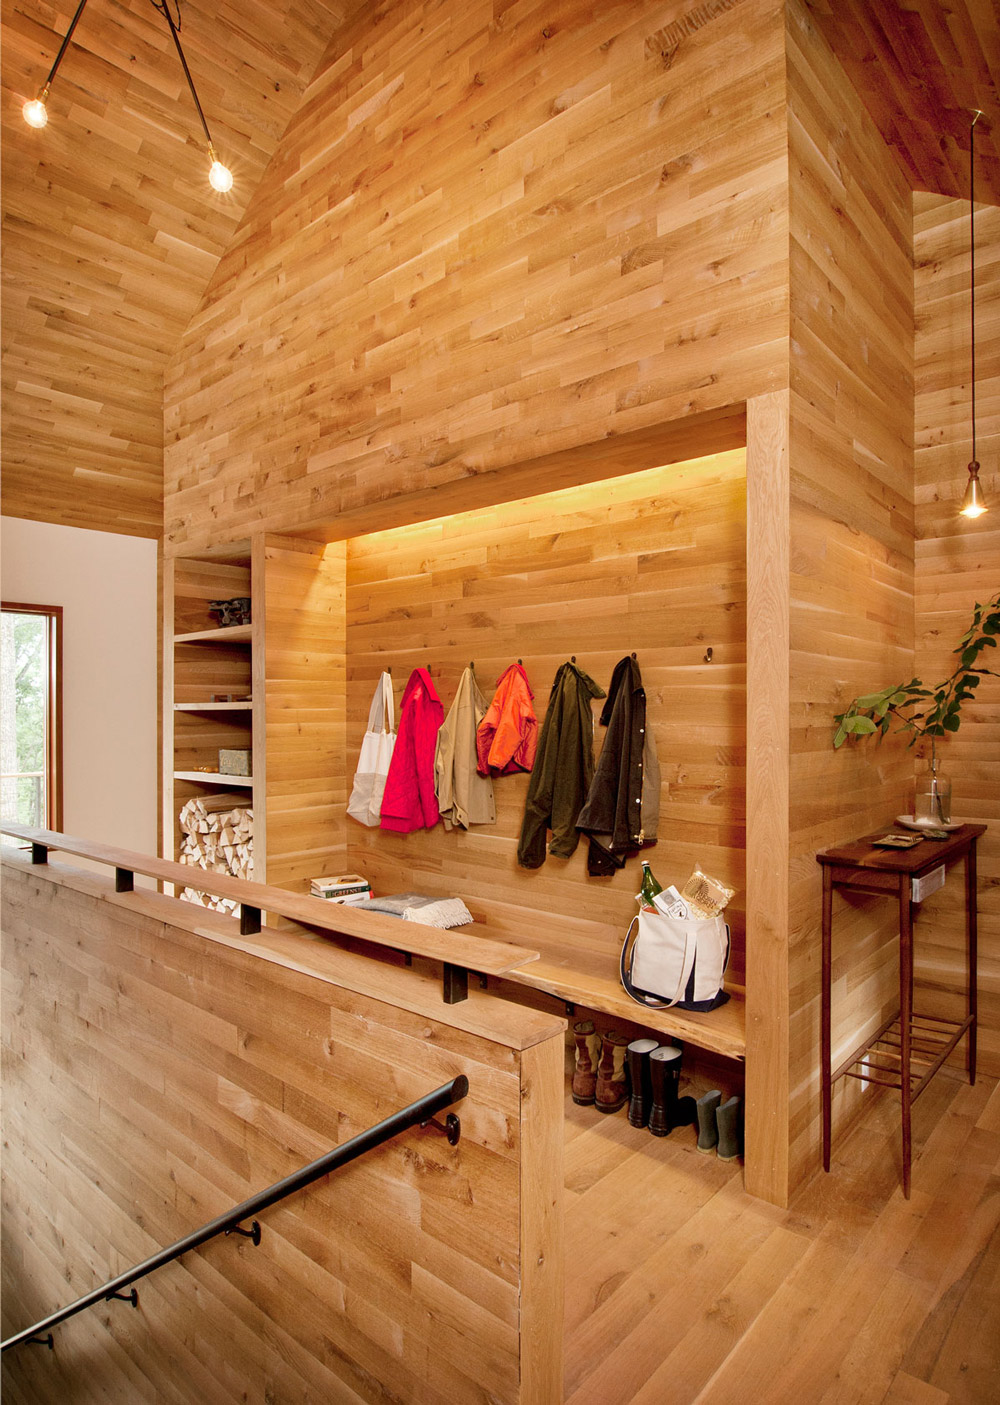 Coat Rack, Lighting, Wood and Glass House in Kerhonkson